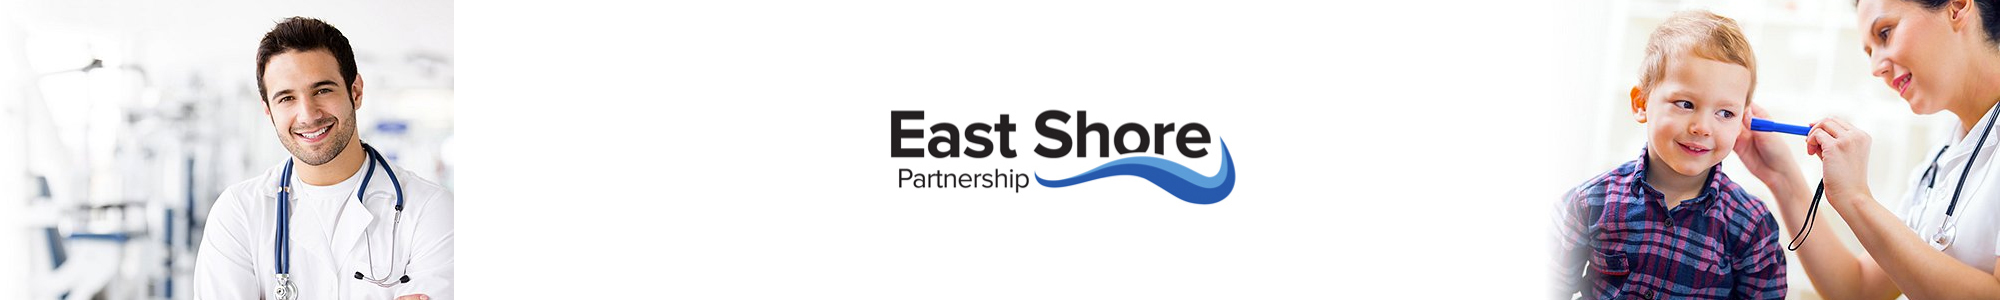 East Shore Partnership